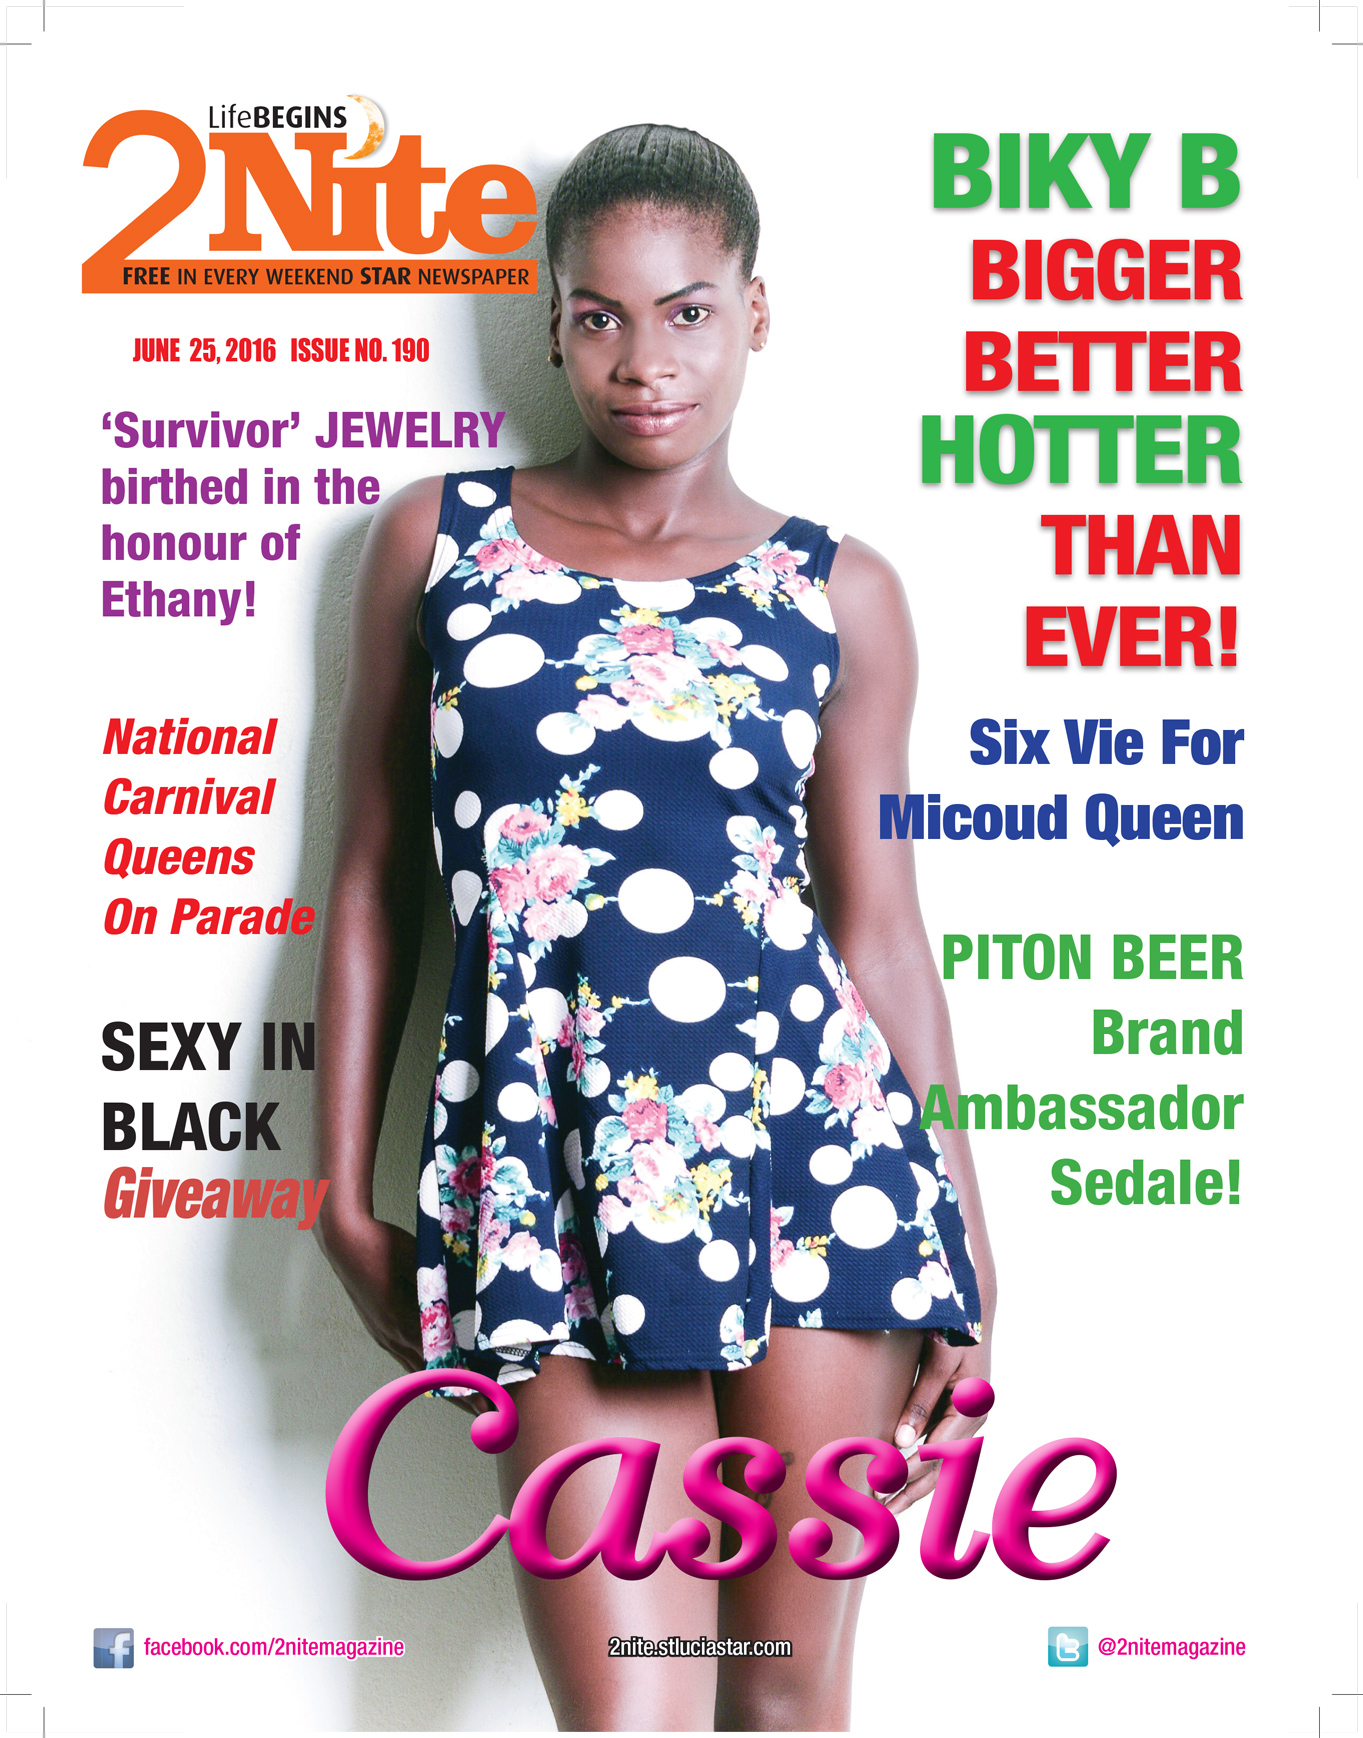 2Nite Magazine for Saturday June 25th, 2016 ~ Issue no. 190